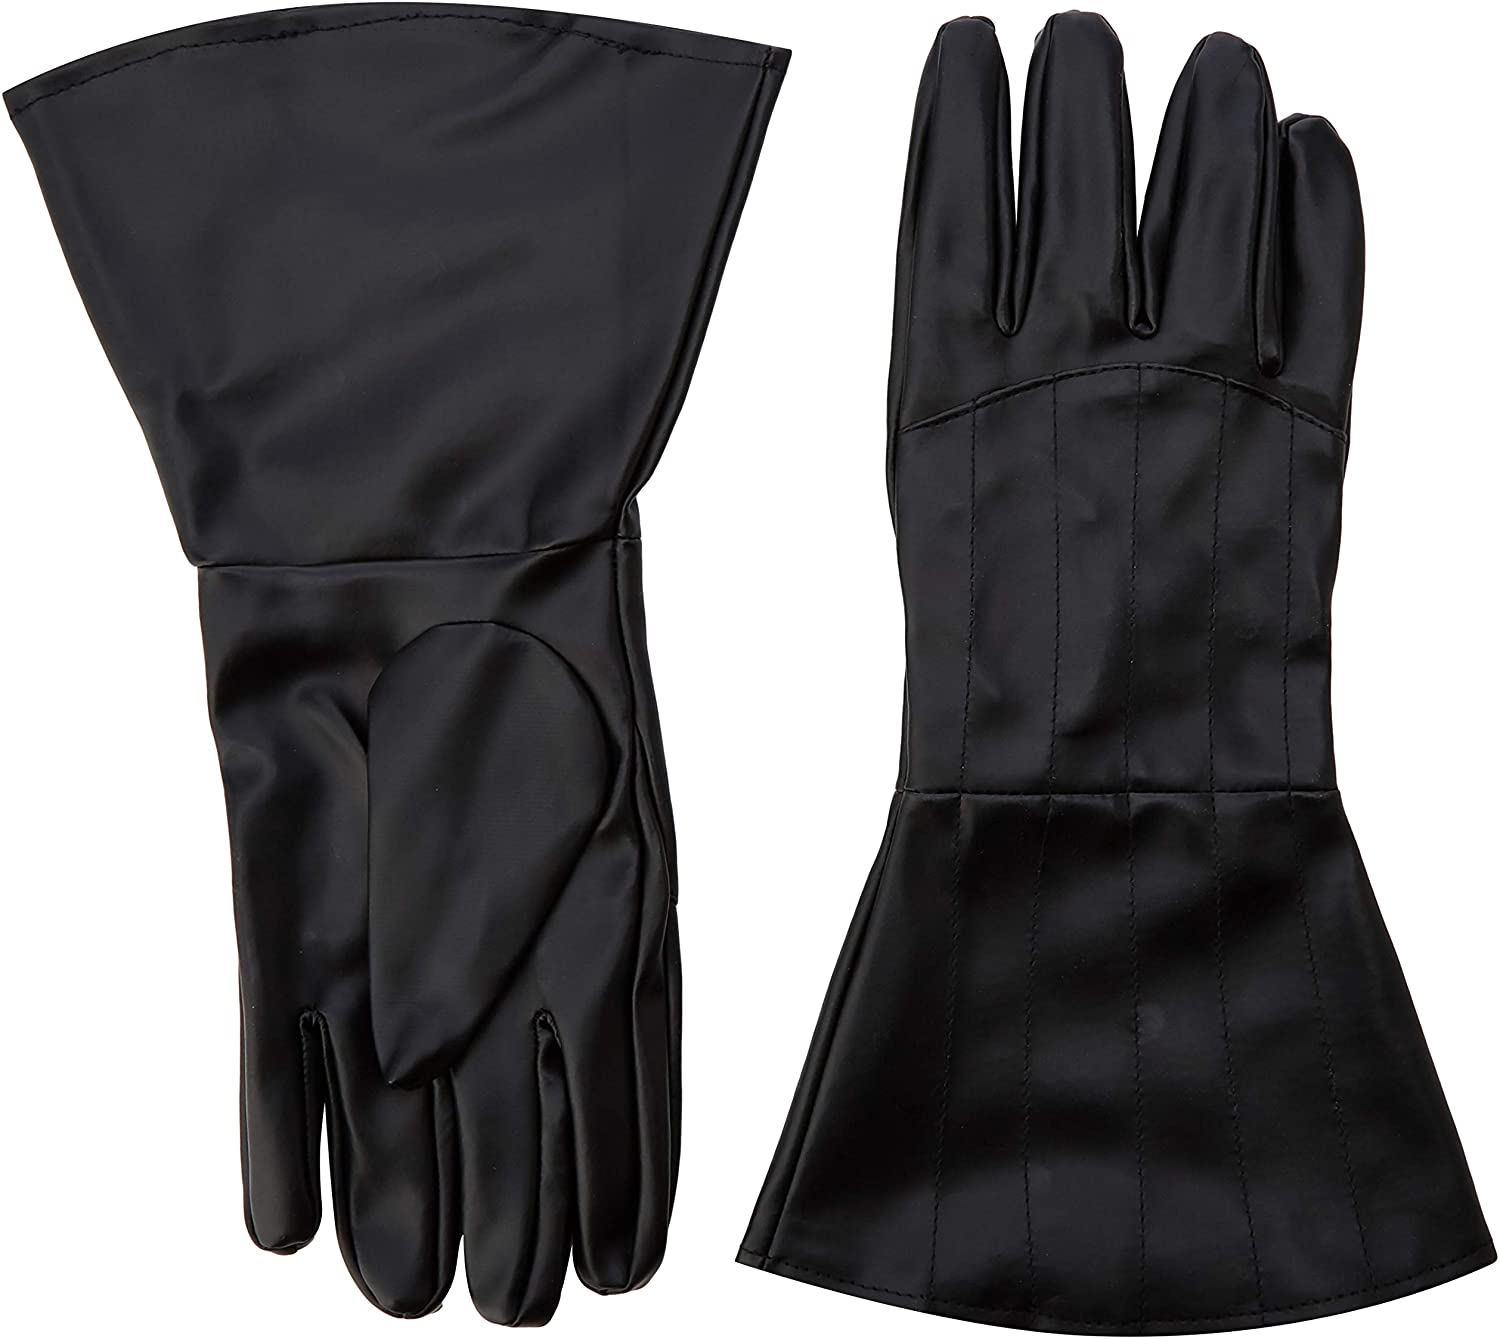 Amazon.com: Guantes de Darth Vader de Star Wars, Adulto ...